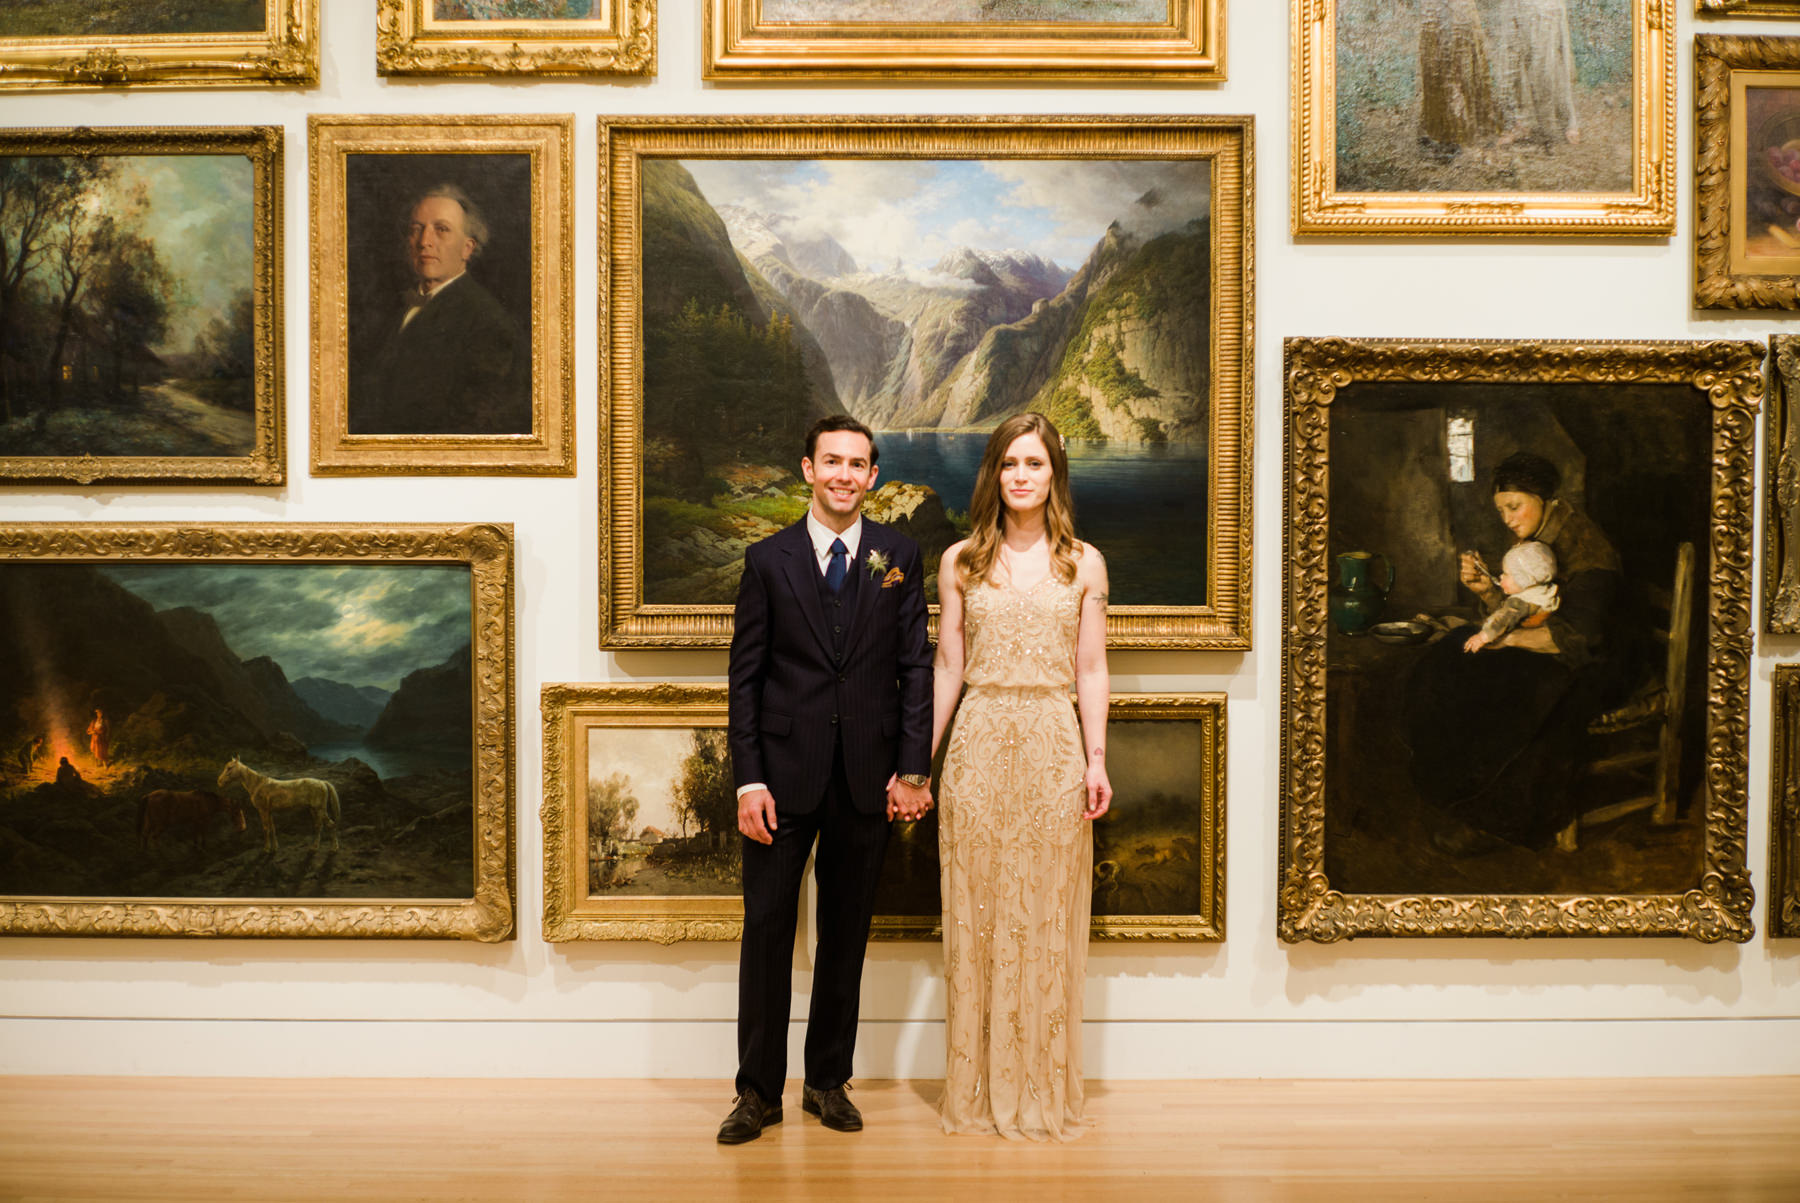 001-hip-bride-and-groom-in-front-of-oil-paintings-at-the-frye-art-museum.jpg